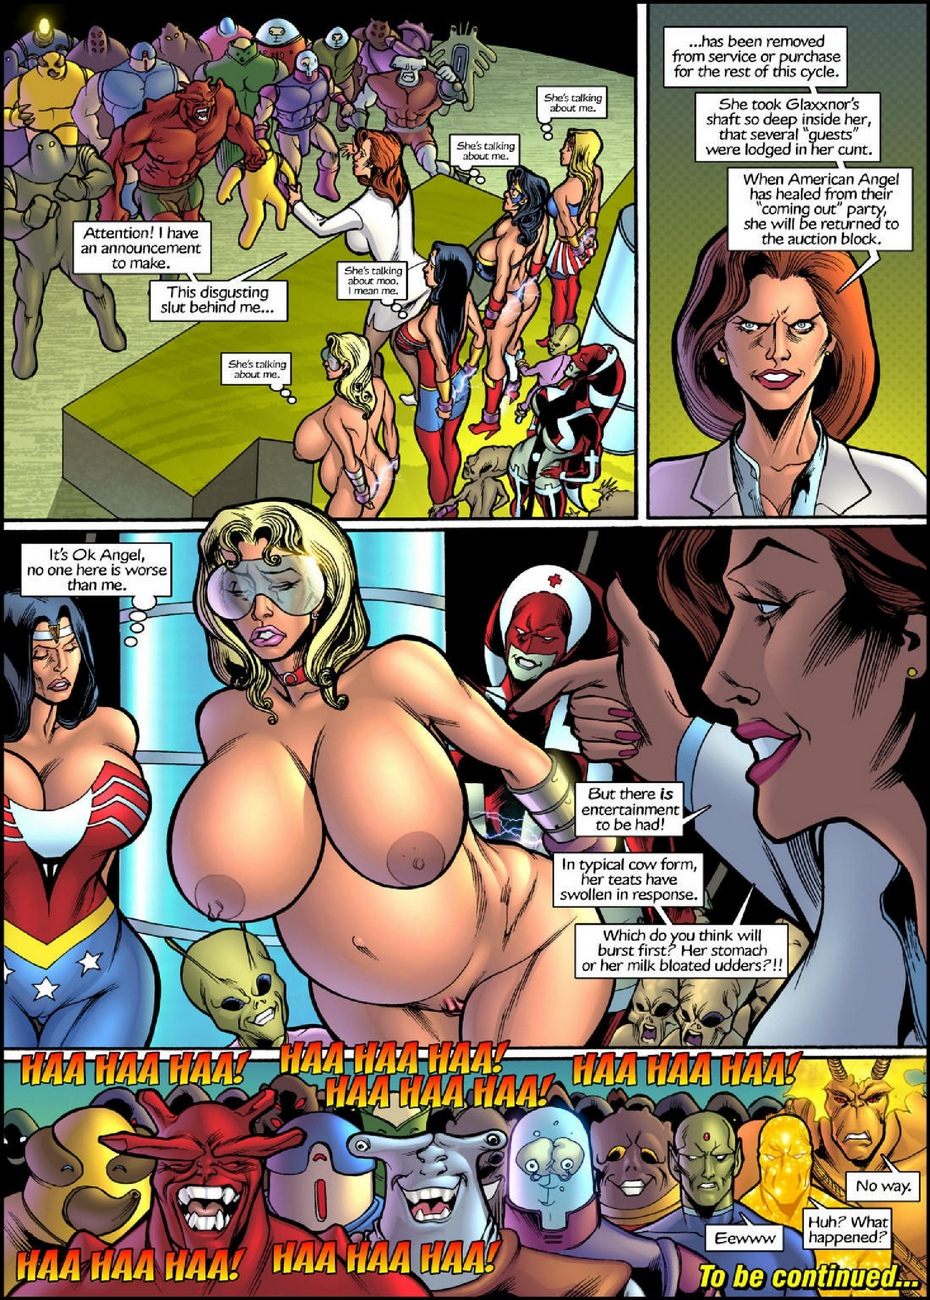 Freedom Stars - Cattle Call 1 - part 4